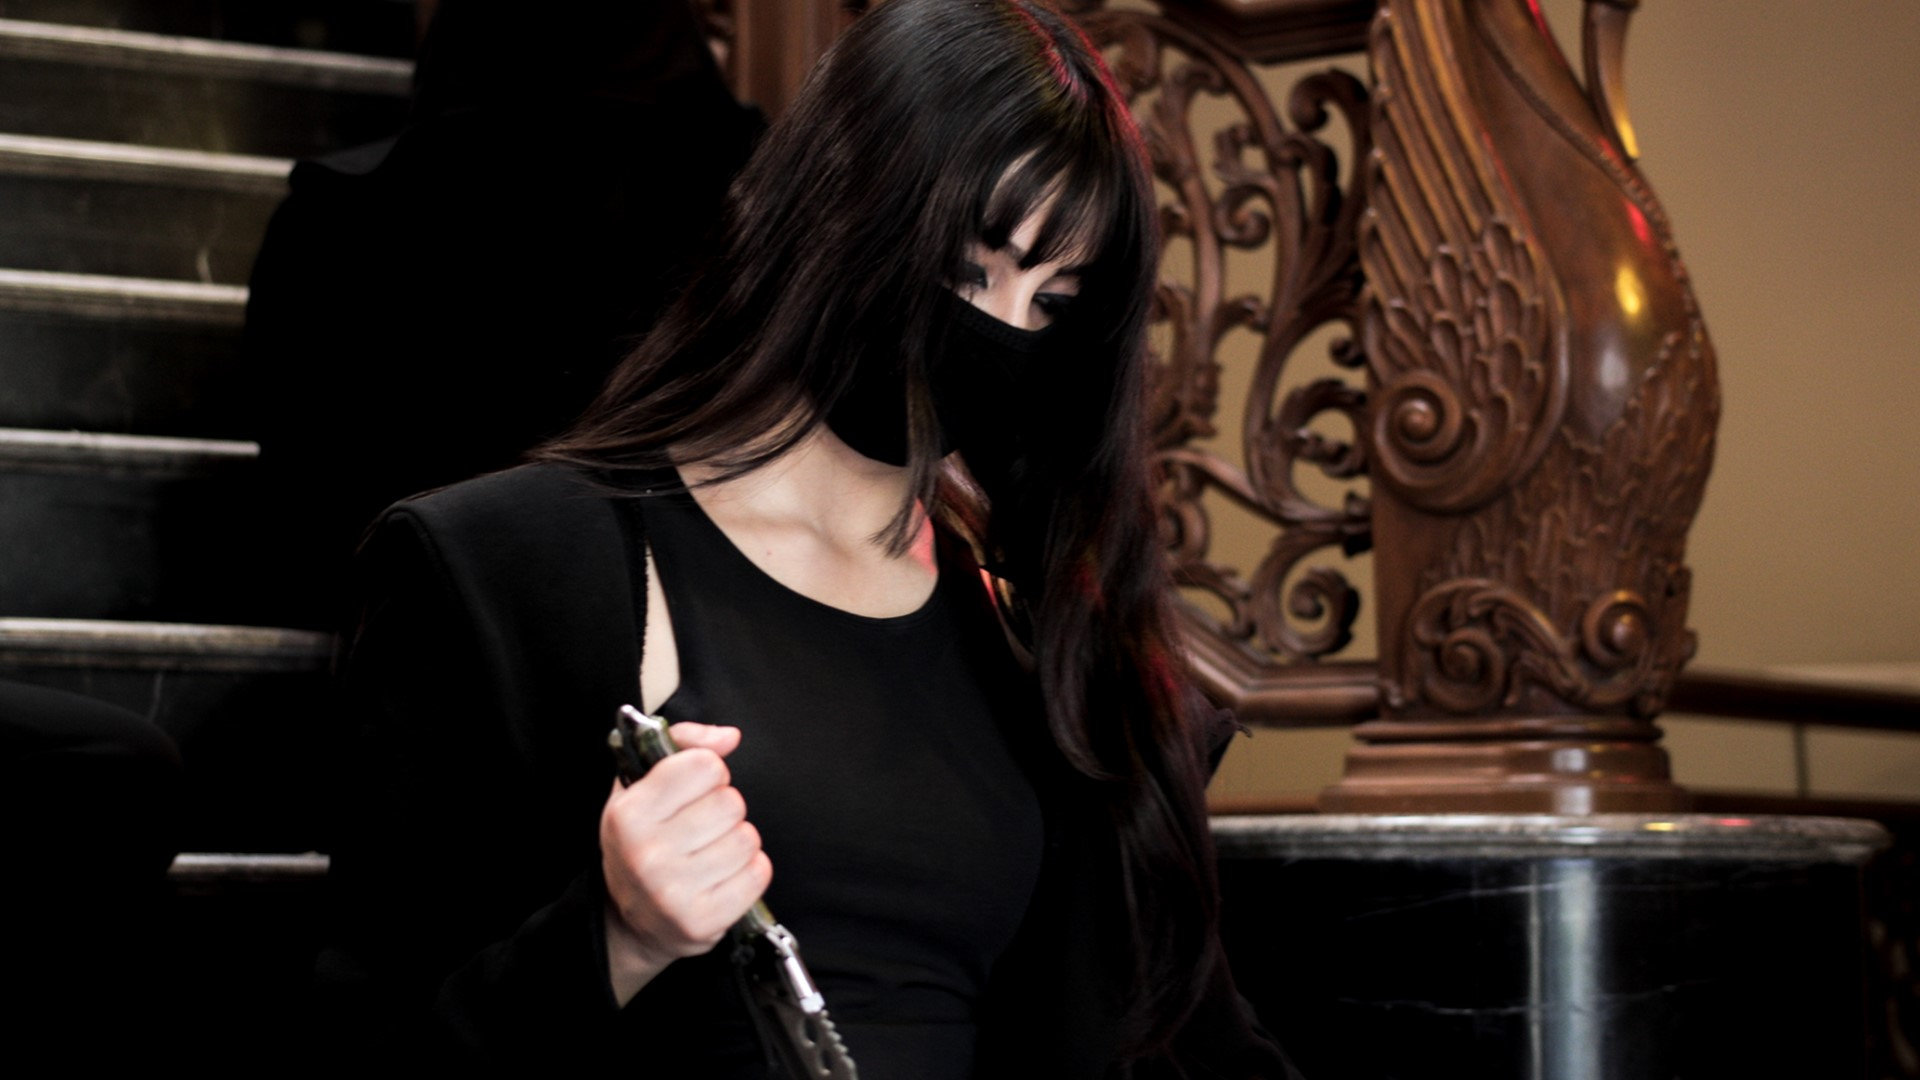 The video revolves around a mysterious entity.